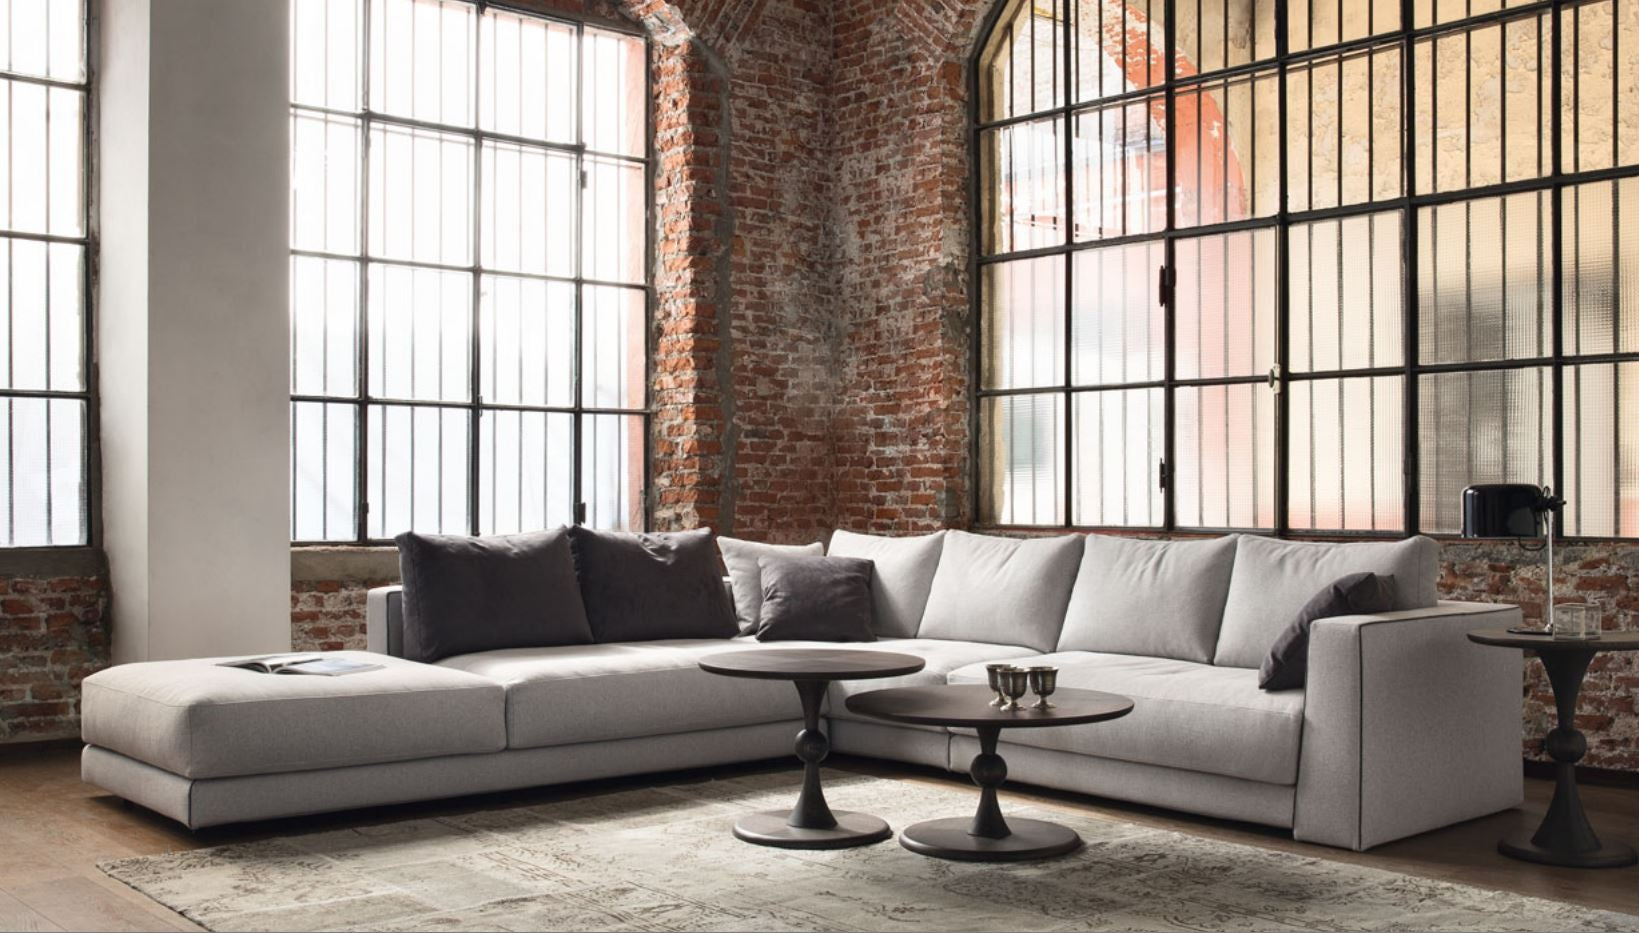 Italian Contemporary Sofas Italian Designer Sofa With Sculptural Arms Made In Italy Fabric Or Leather